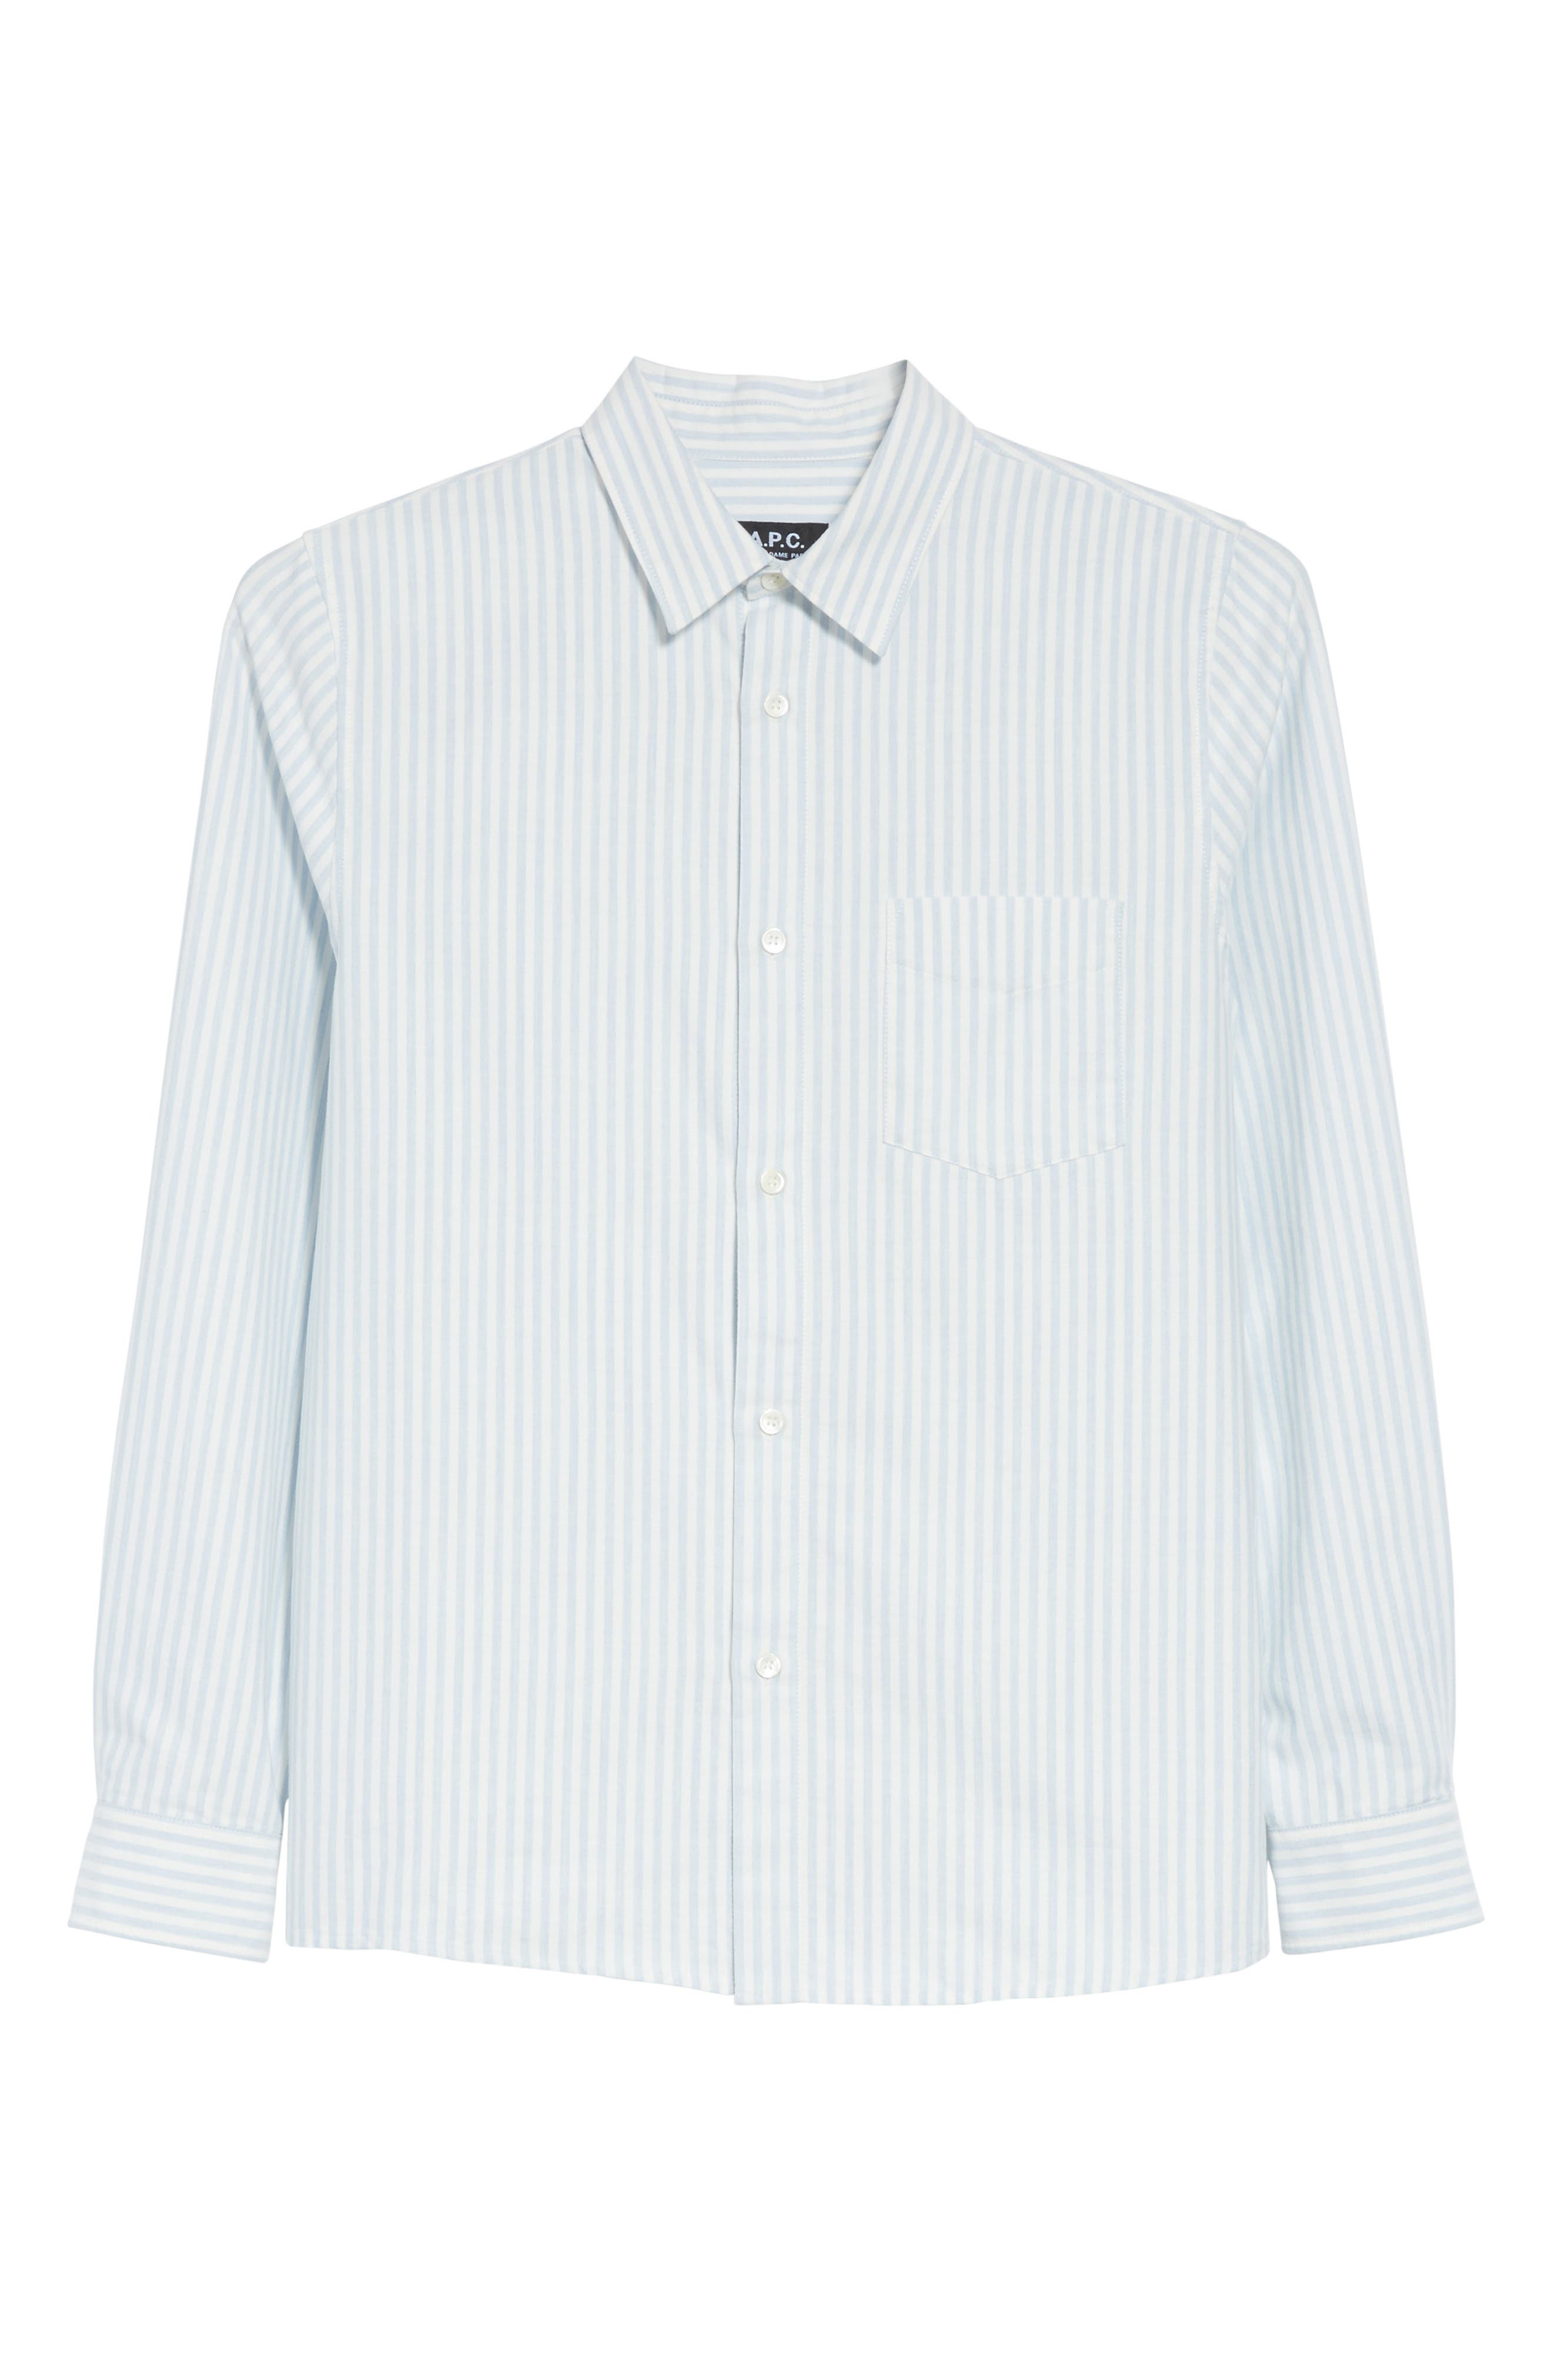 Oliver Stripe Oxford Shirt,                             Alternate thumbnail 6, color,                             Blue